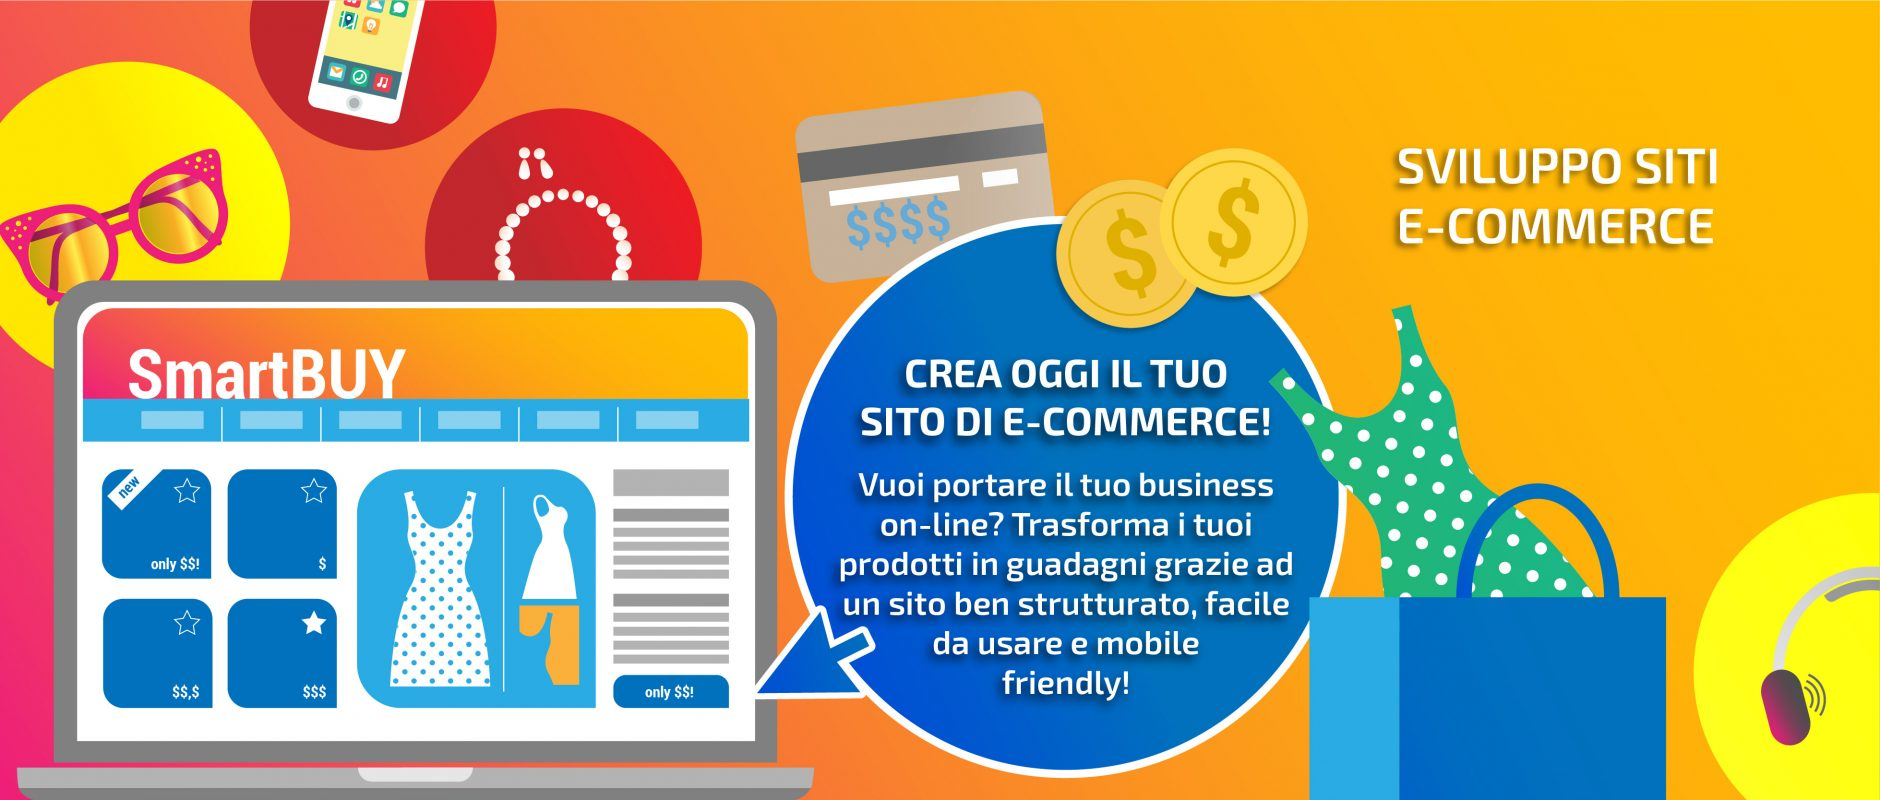 SVILUPPO SITI E-COMMERCE by TC-WEB